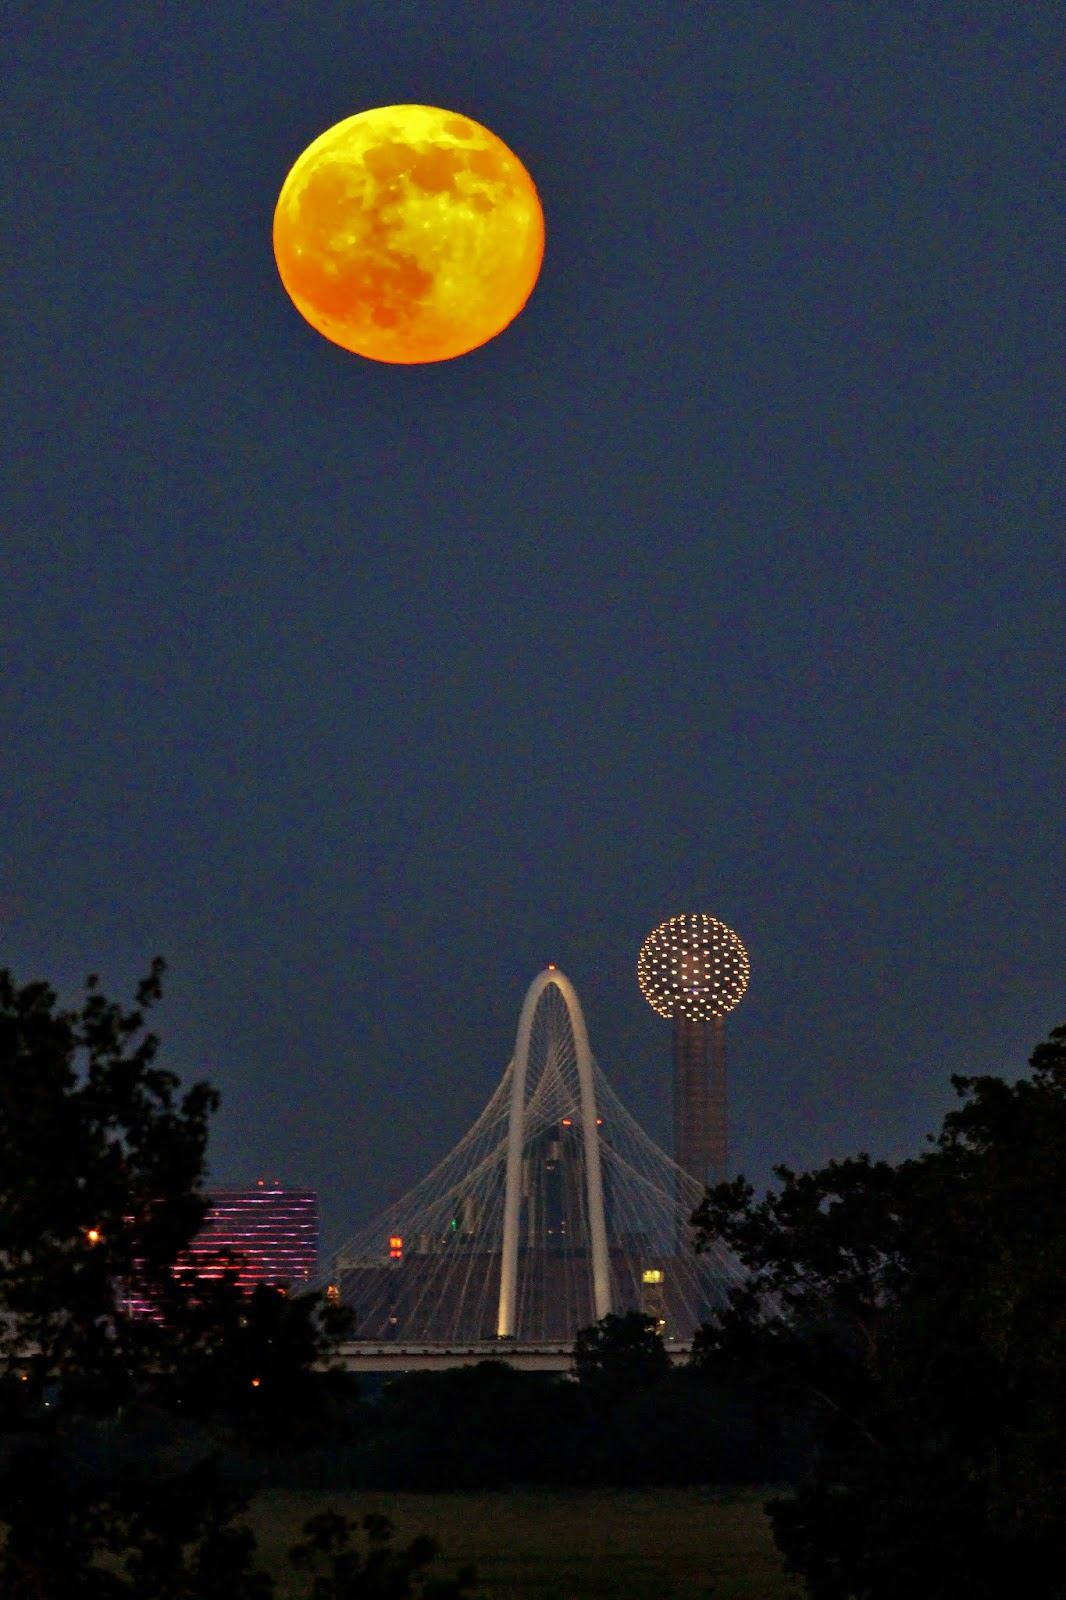 supermoon, super moon, supermoon photo july 2014, supermoon july 12 2014 dallas, supermoon photo july 2014 dallas, dallas meteor supermoon photo, photo of of meteor during supermoon july 12 2014, meteor supermoon july 2014 photo, photo dallas supermoon meteor photo july 2014,  super moon meteor july 12 2014, Supermoon photographed by Ben Sandifer rising over the skylines of Dallas on July 12, 2014